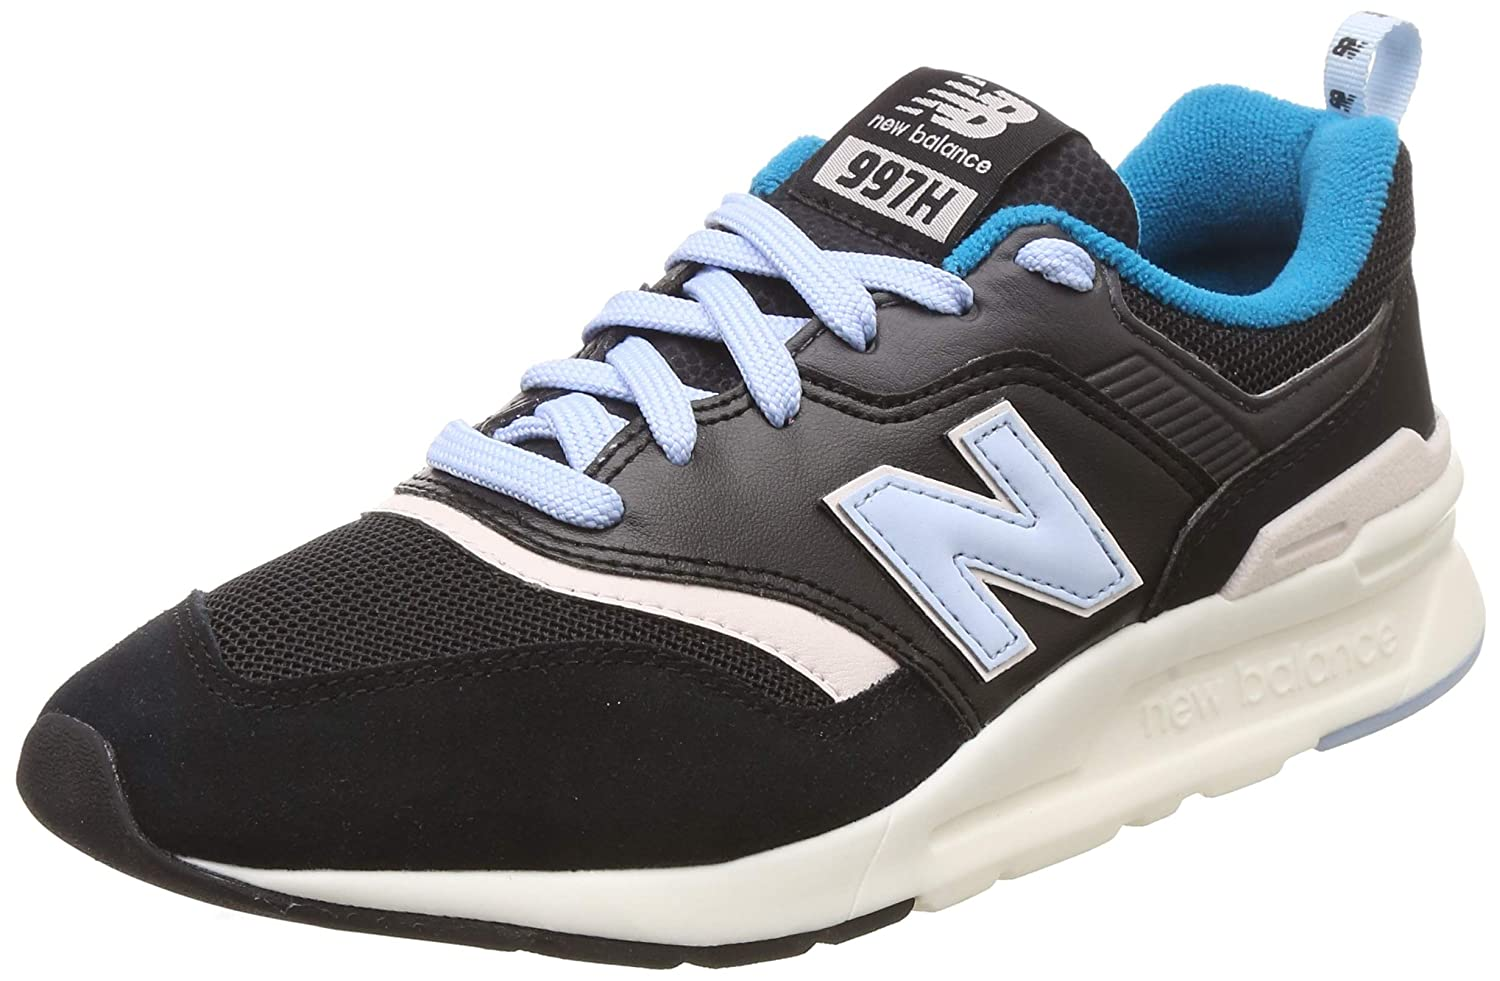 NEW BALANCE | SNEAKER 997H 36.5 Sea Salt with Light Carnival